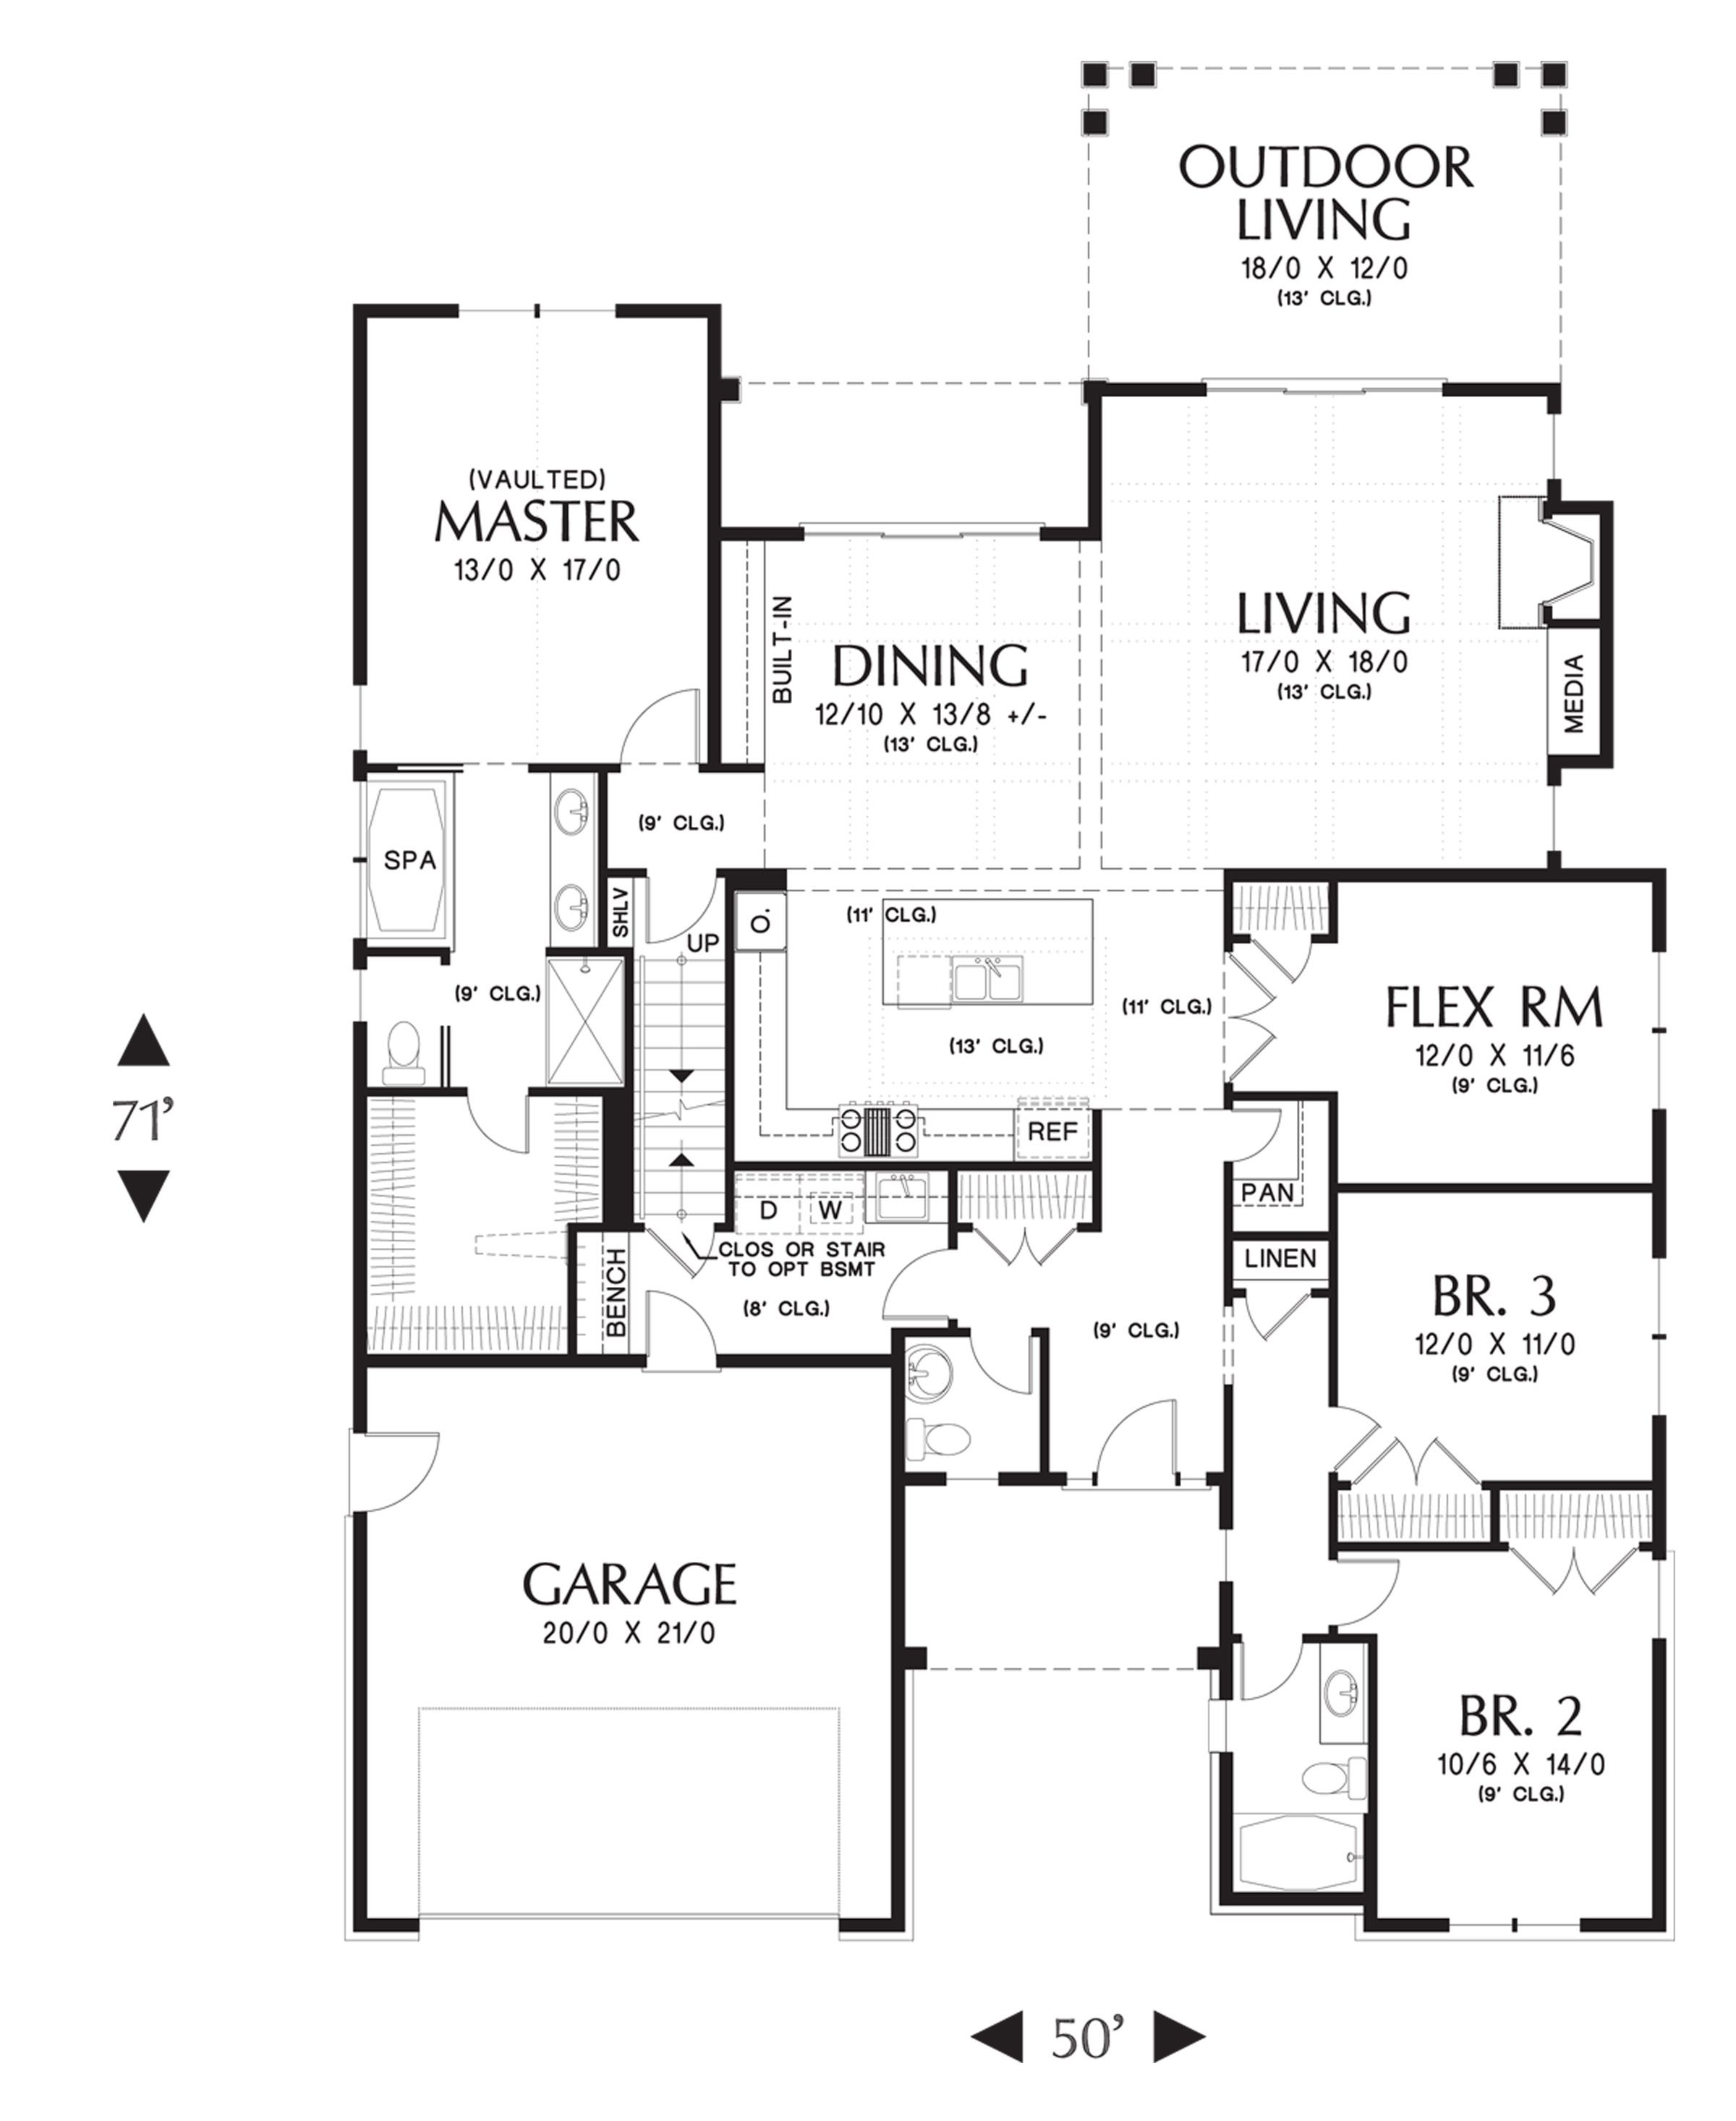 the cotswolder house plan has 4br and 2.5ba and a great open